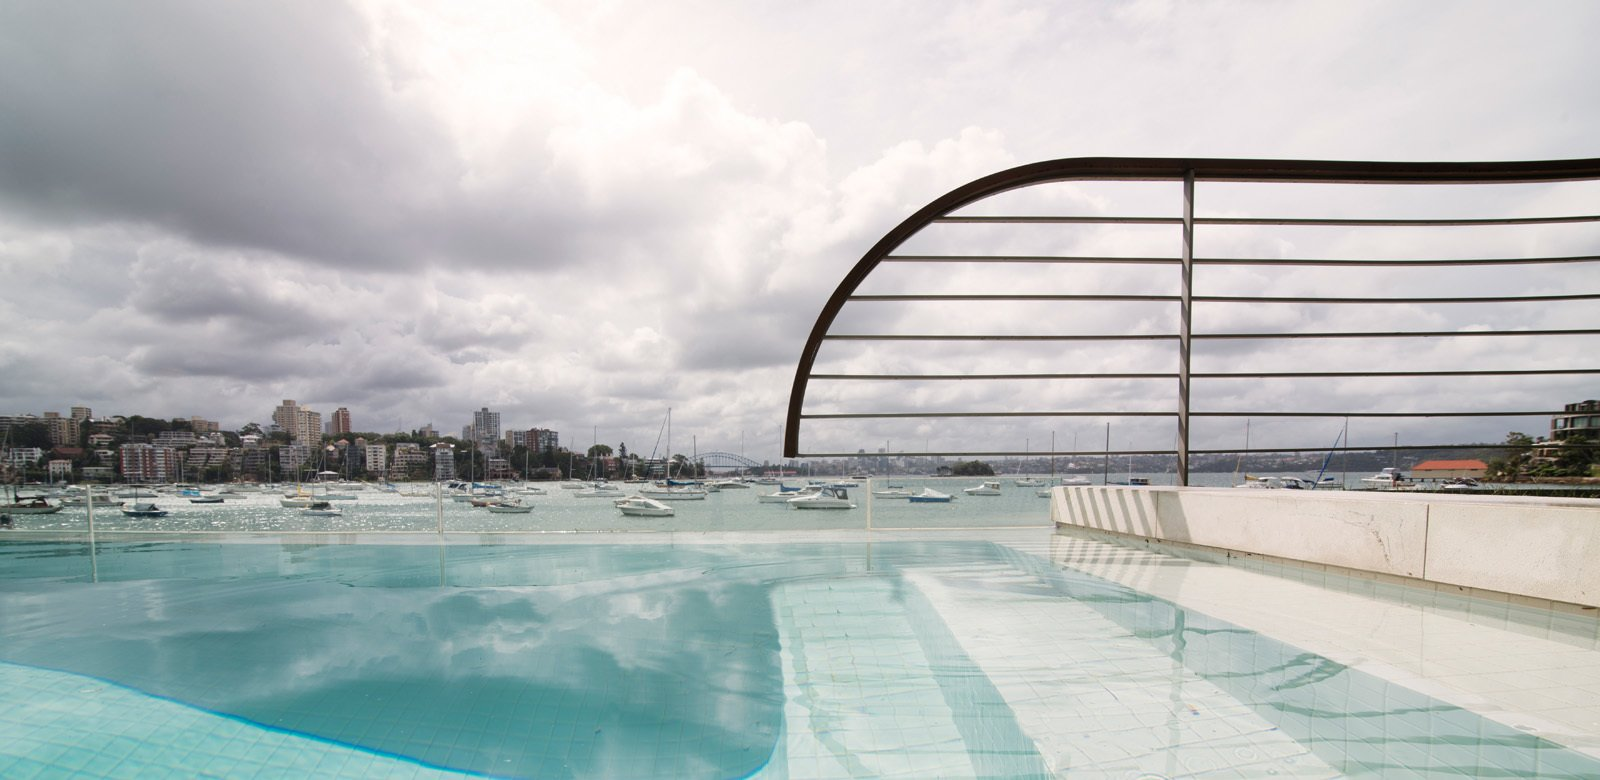 Sydney Harbour's water continues in the white tiled swimming pool, a glass splash protection screen limits any pool water overflow onto the public beach. © Edward Birch